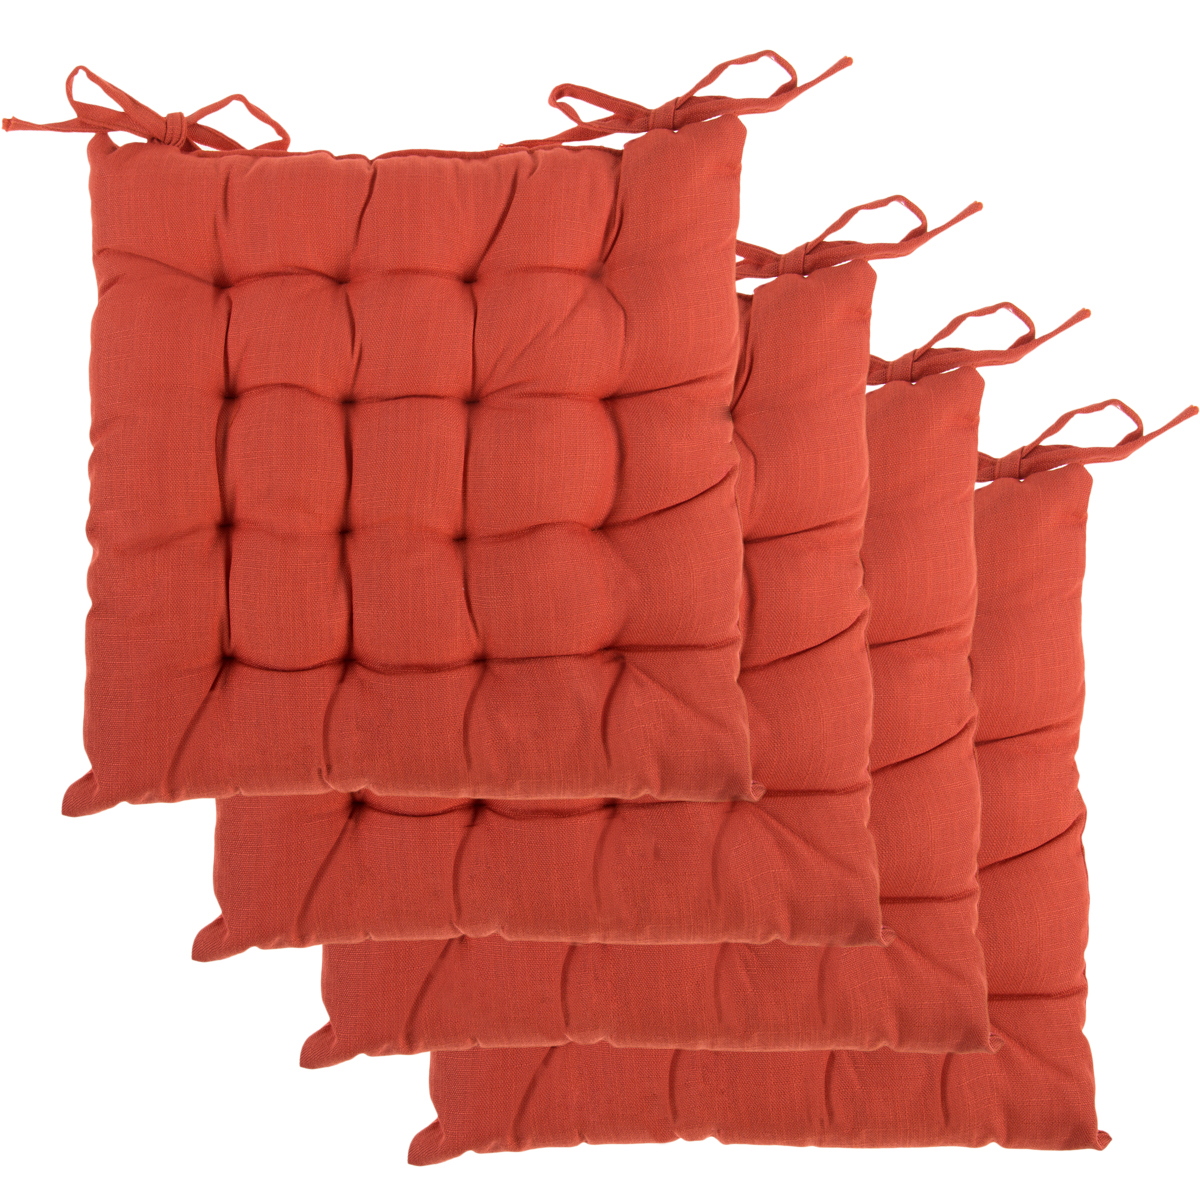 Gentil Dream Home (Set Of 4) Indoor Chair Pads Inches Square Tufted Seat Cushions  Pillows With Ties   Walmart.com